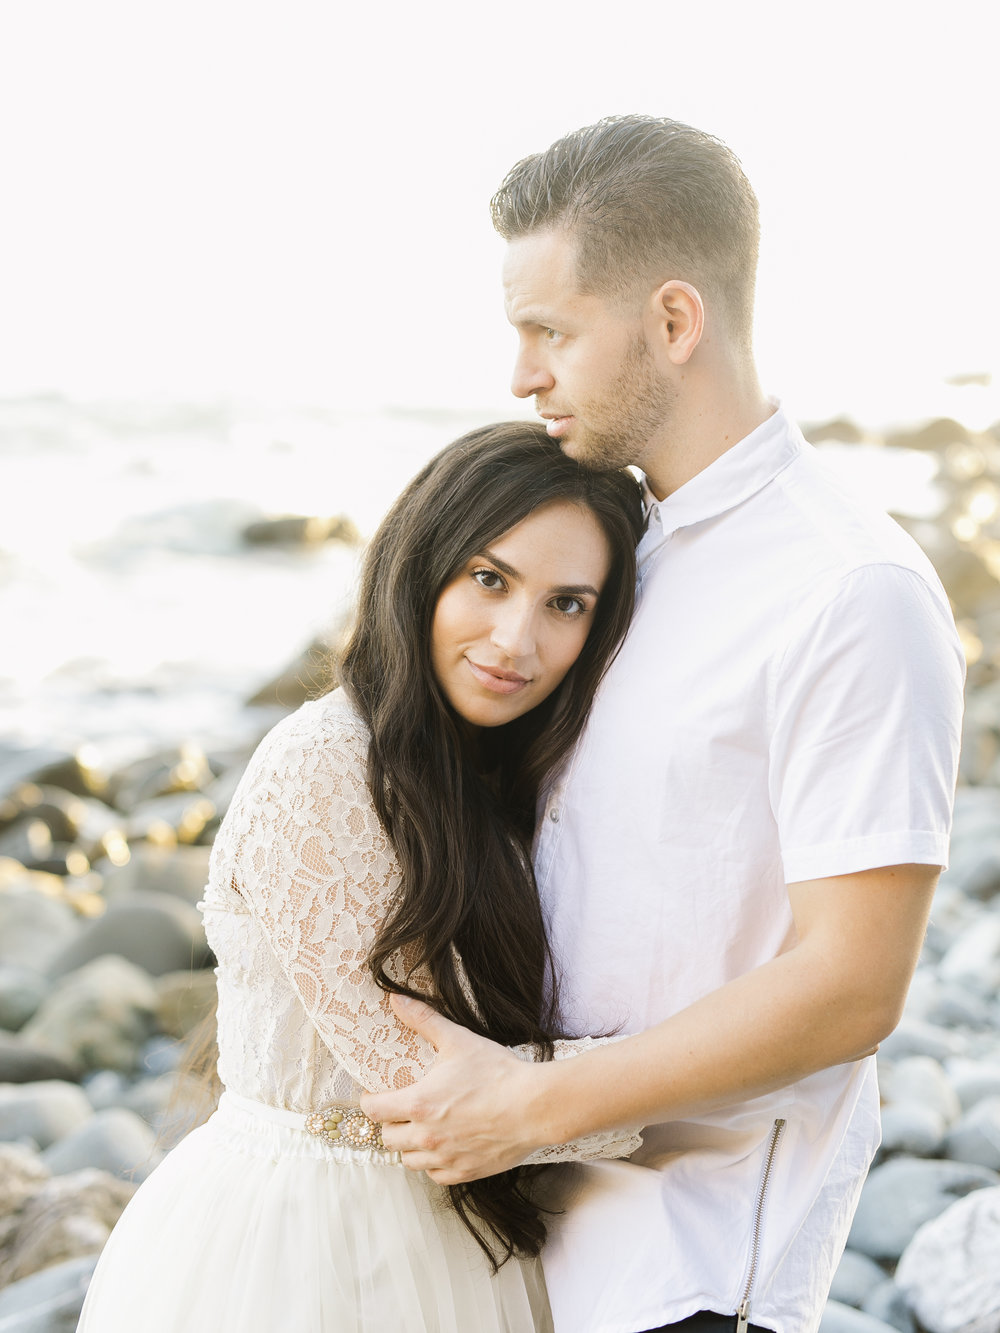 SAN_JUAN_MISSION_CAPISTRANO_ENGAGEMENT_SESSION_ BRYAN_SHAY_SNEAK_PEEK (14 of 11).jpg